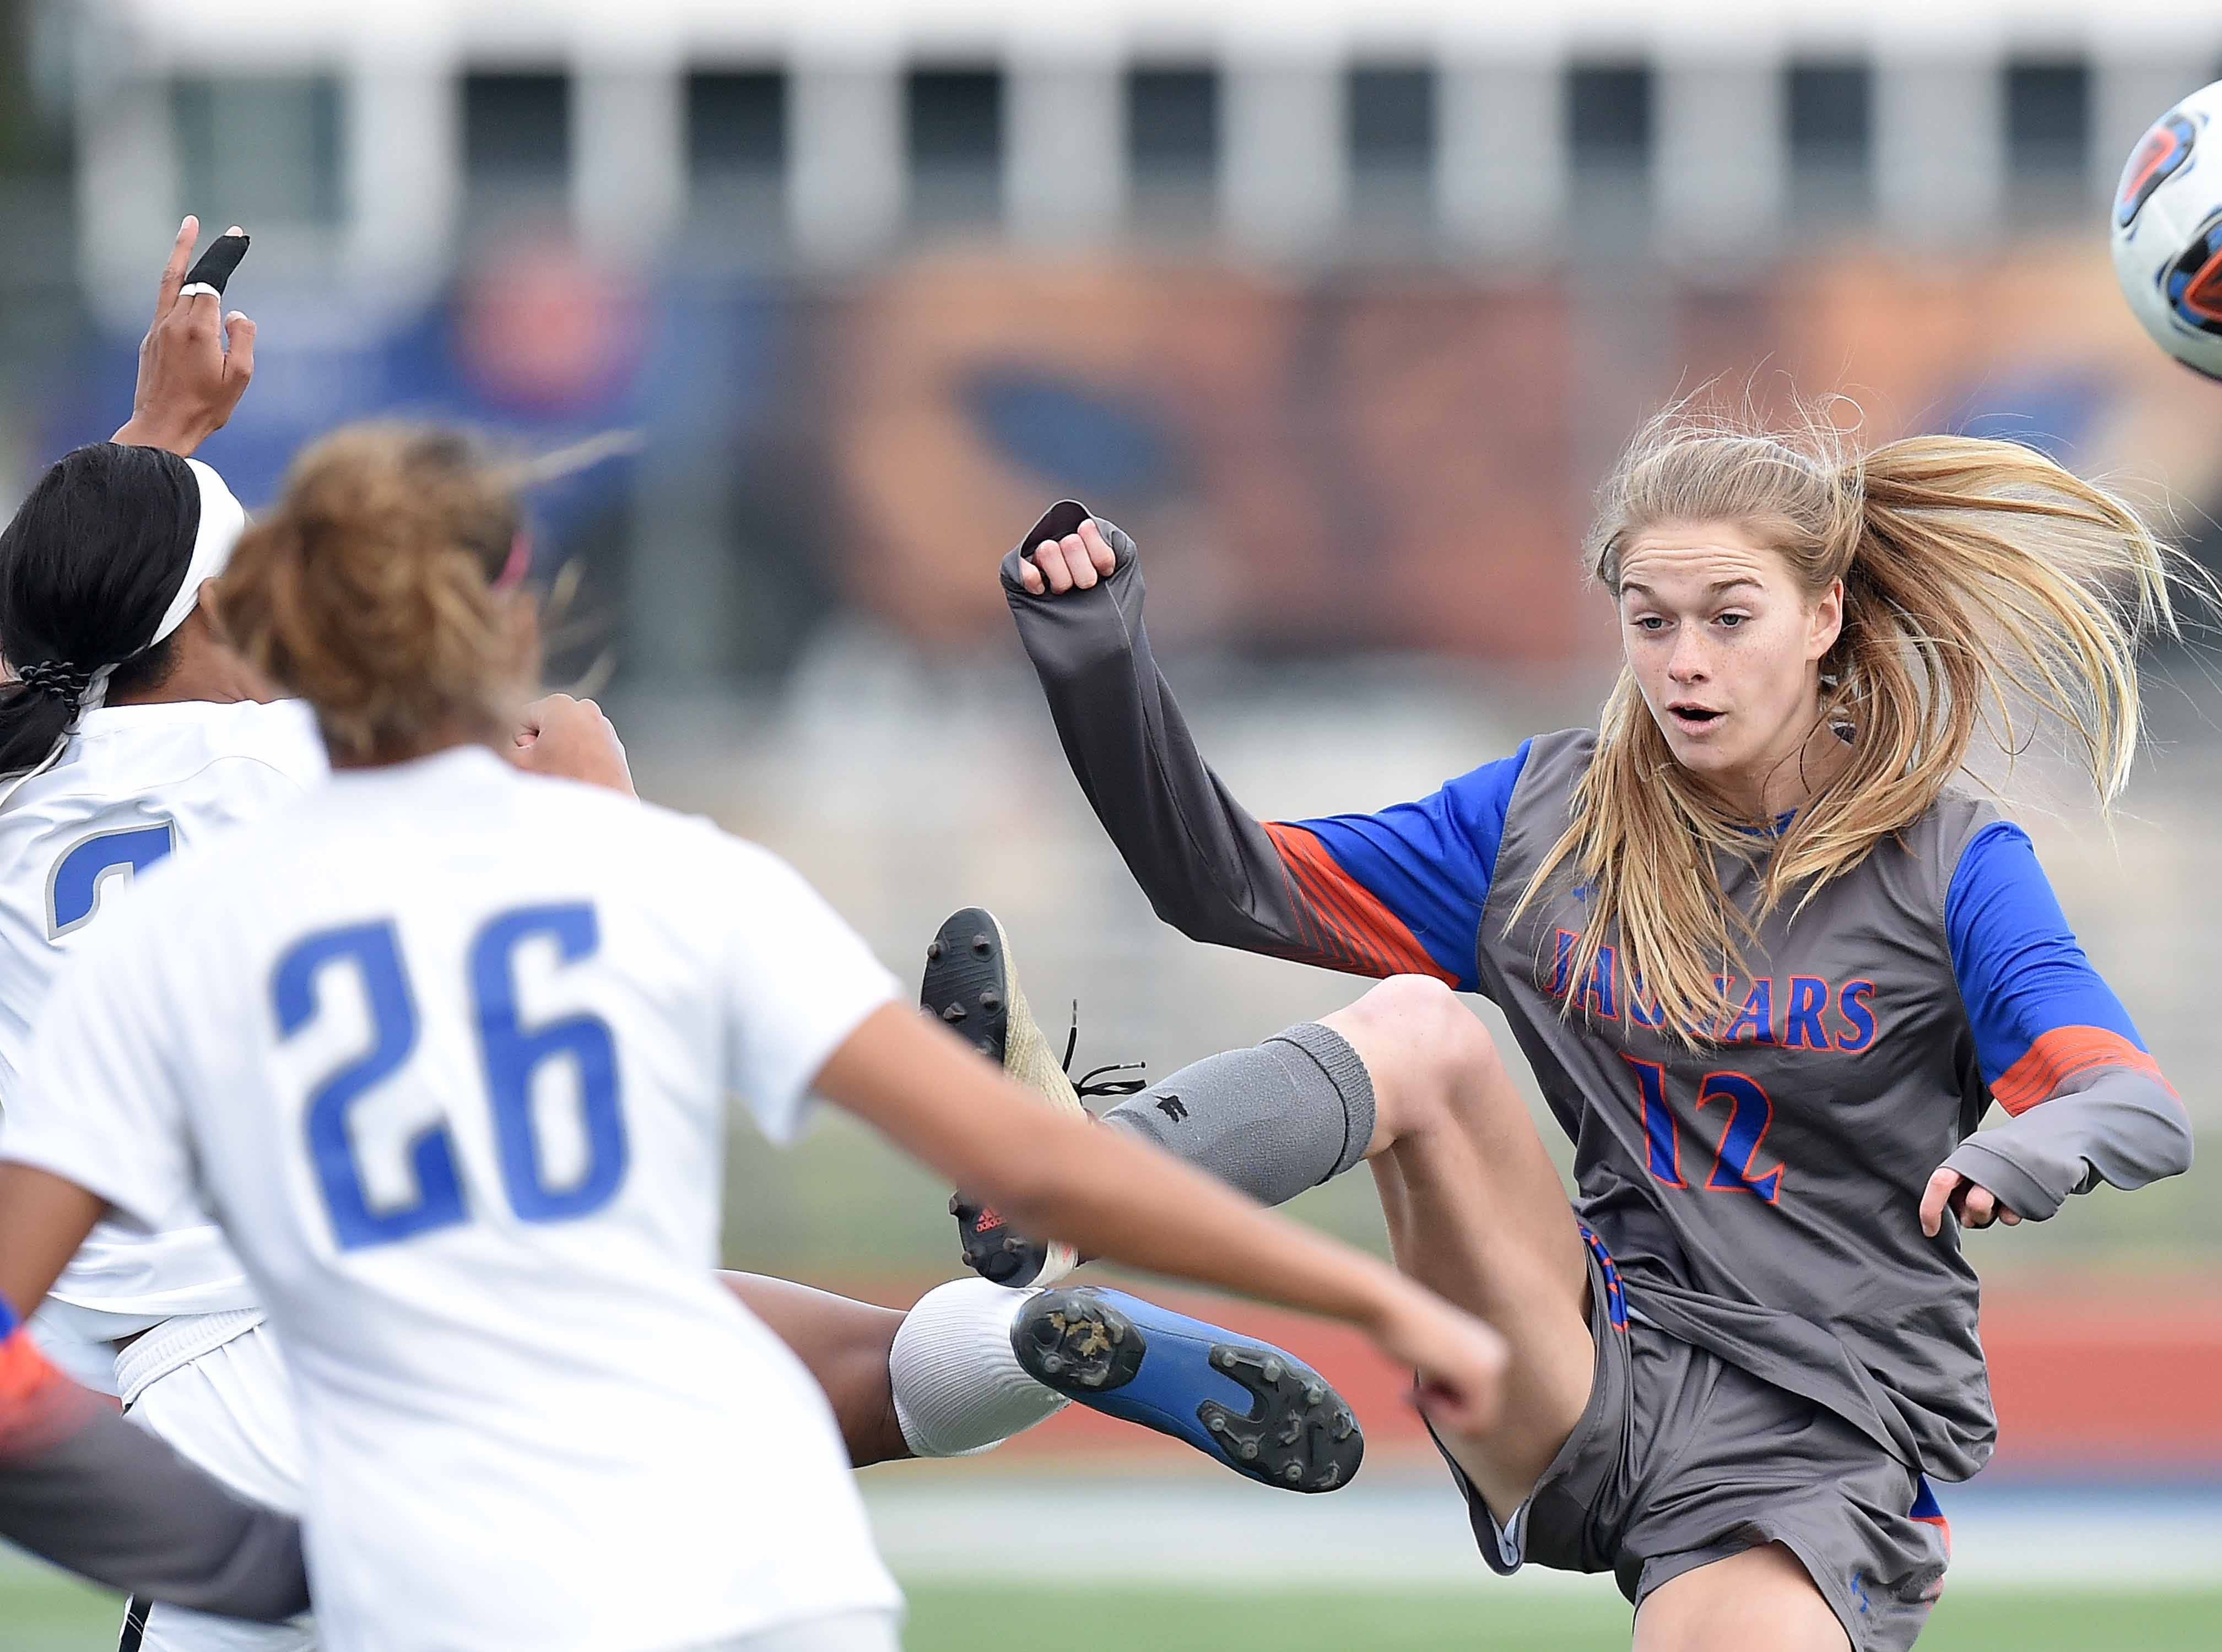 Madison Central's Savannah Turner (12) competes for a loose ball with two Ocean Springs Lady Greyhounds in the Class 6A state championship in the MHSAA BlueCross Blue Shield of Mississippi Soccer Classic on Saturday, February 9, 2019, at Ridgeland High School in Ridgeland, Miss.